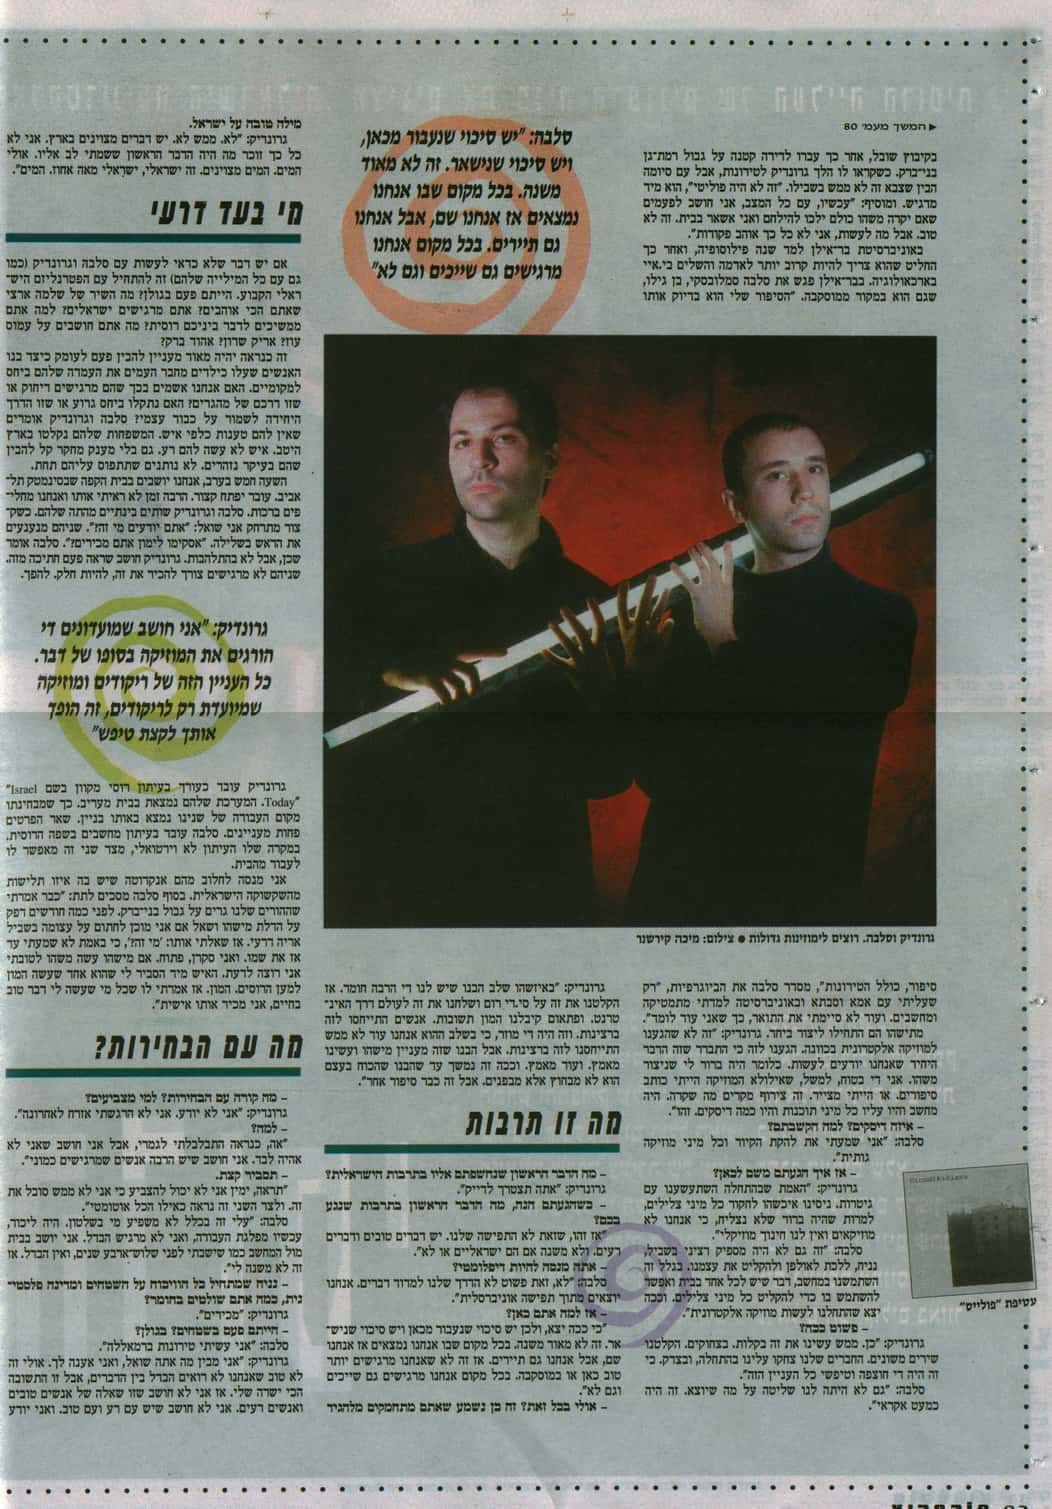 19 01 01 part3 - Cool Ha-Rusi, Maariv, interview with Grundik+Slava, 19.01.2001